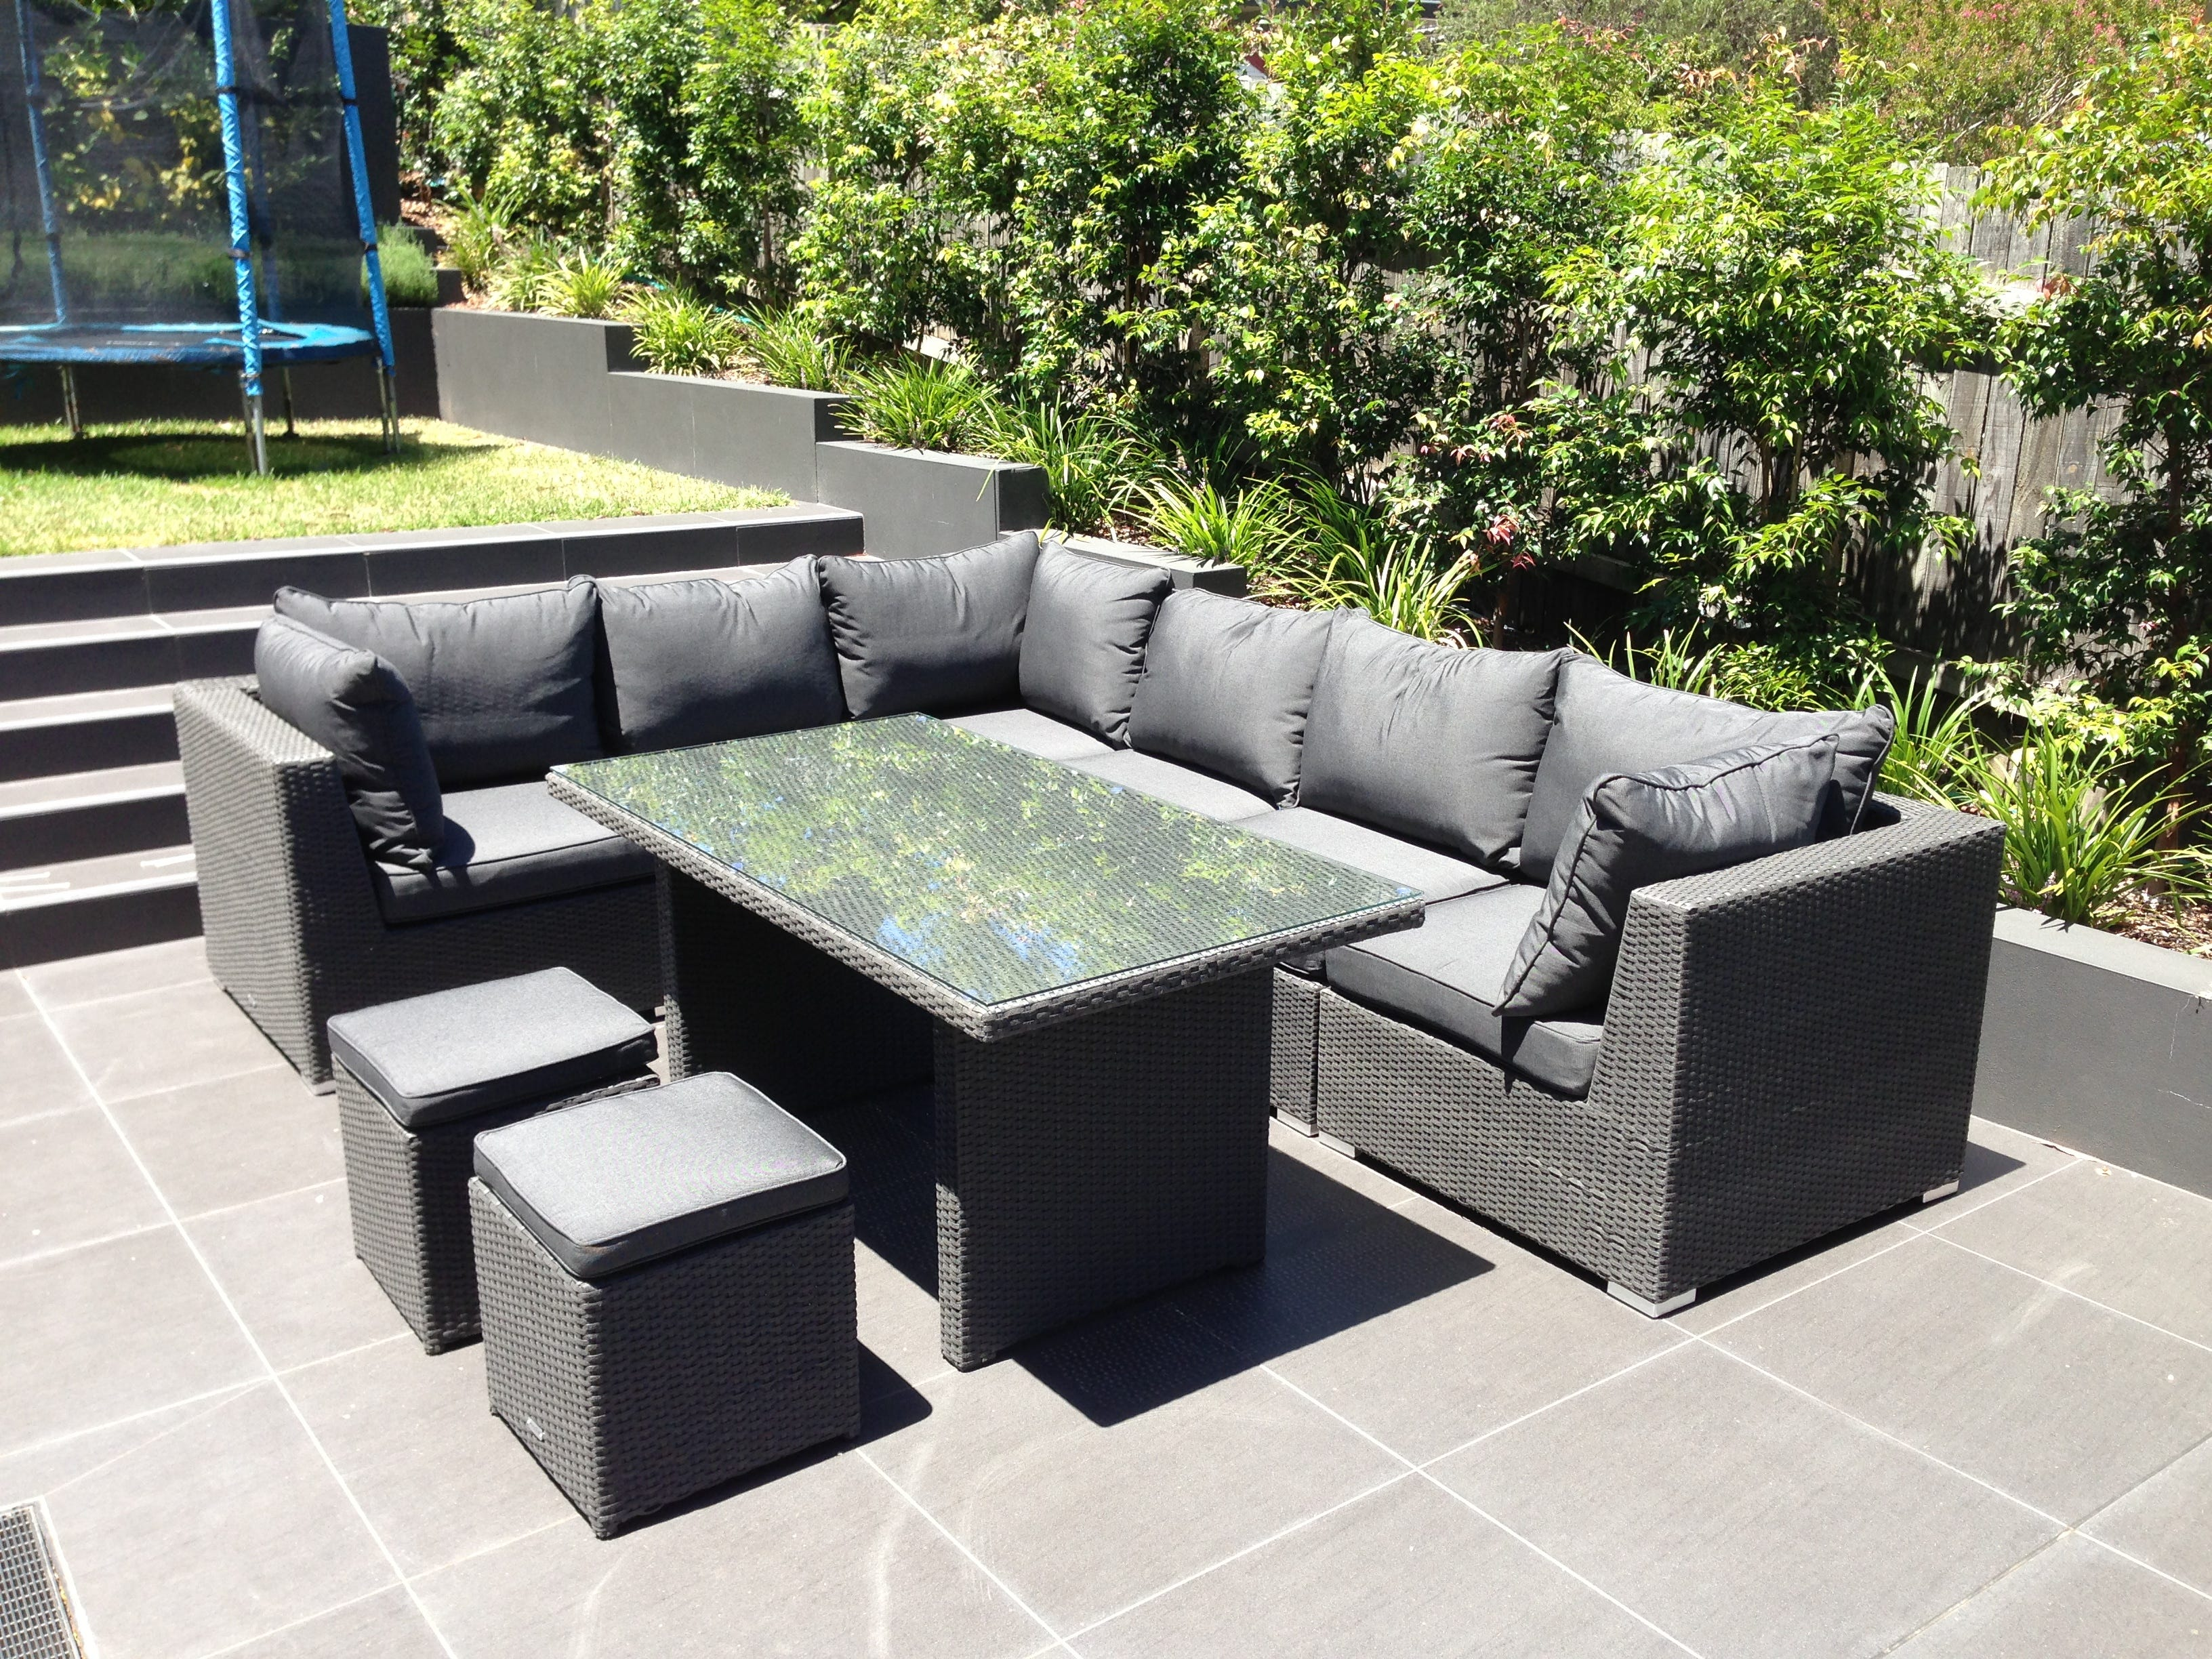 outdoor furniture evolution dining out in comfort. Black Bedroom Furniture Sets. Home Design Ideas